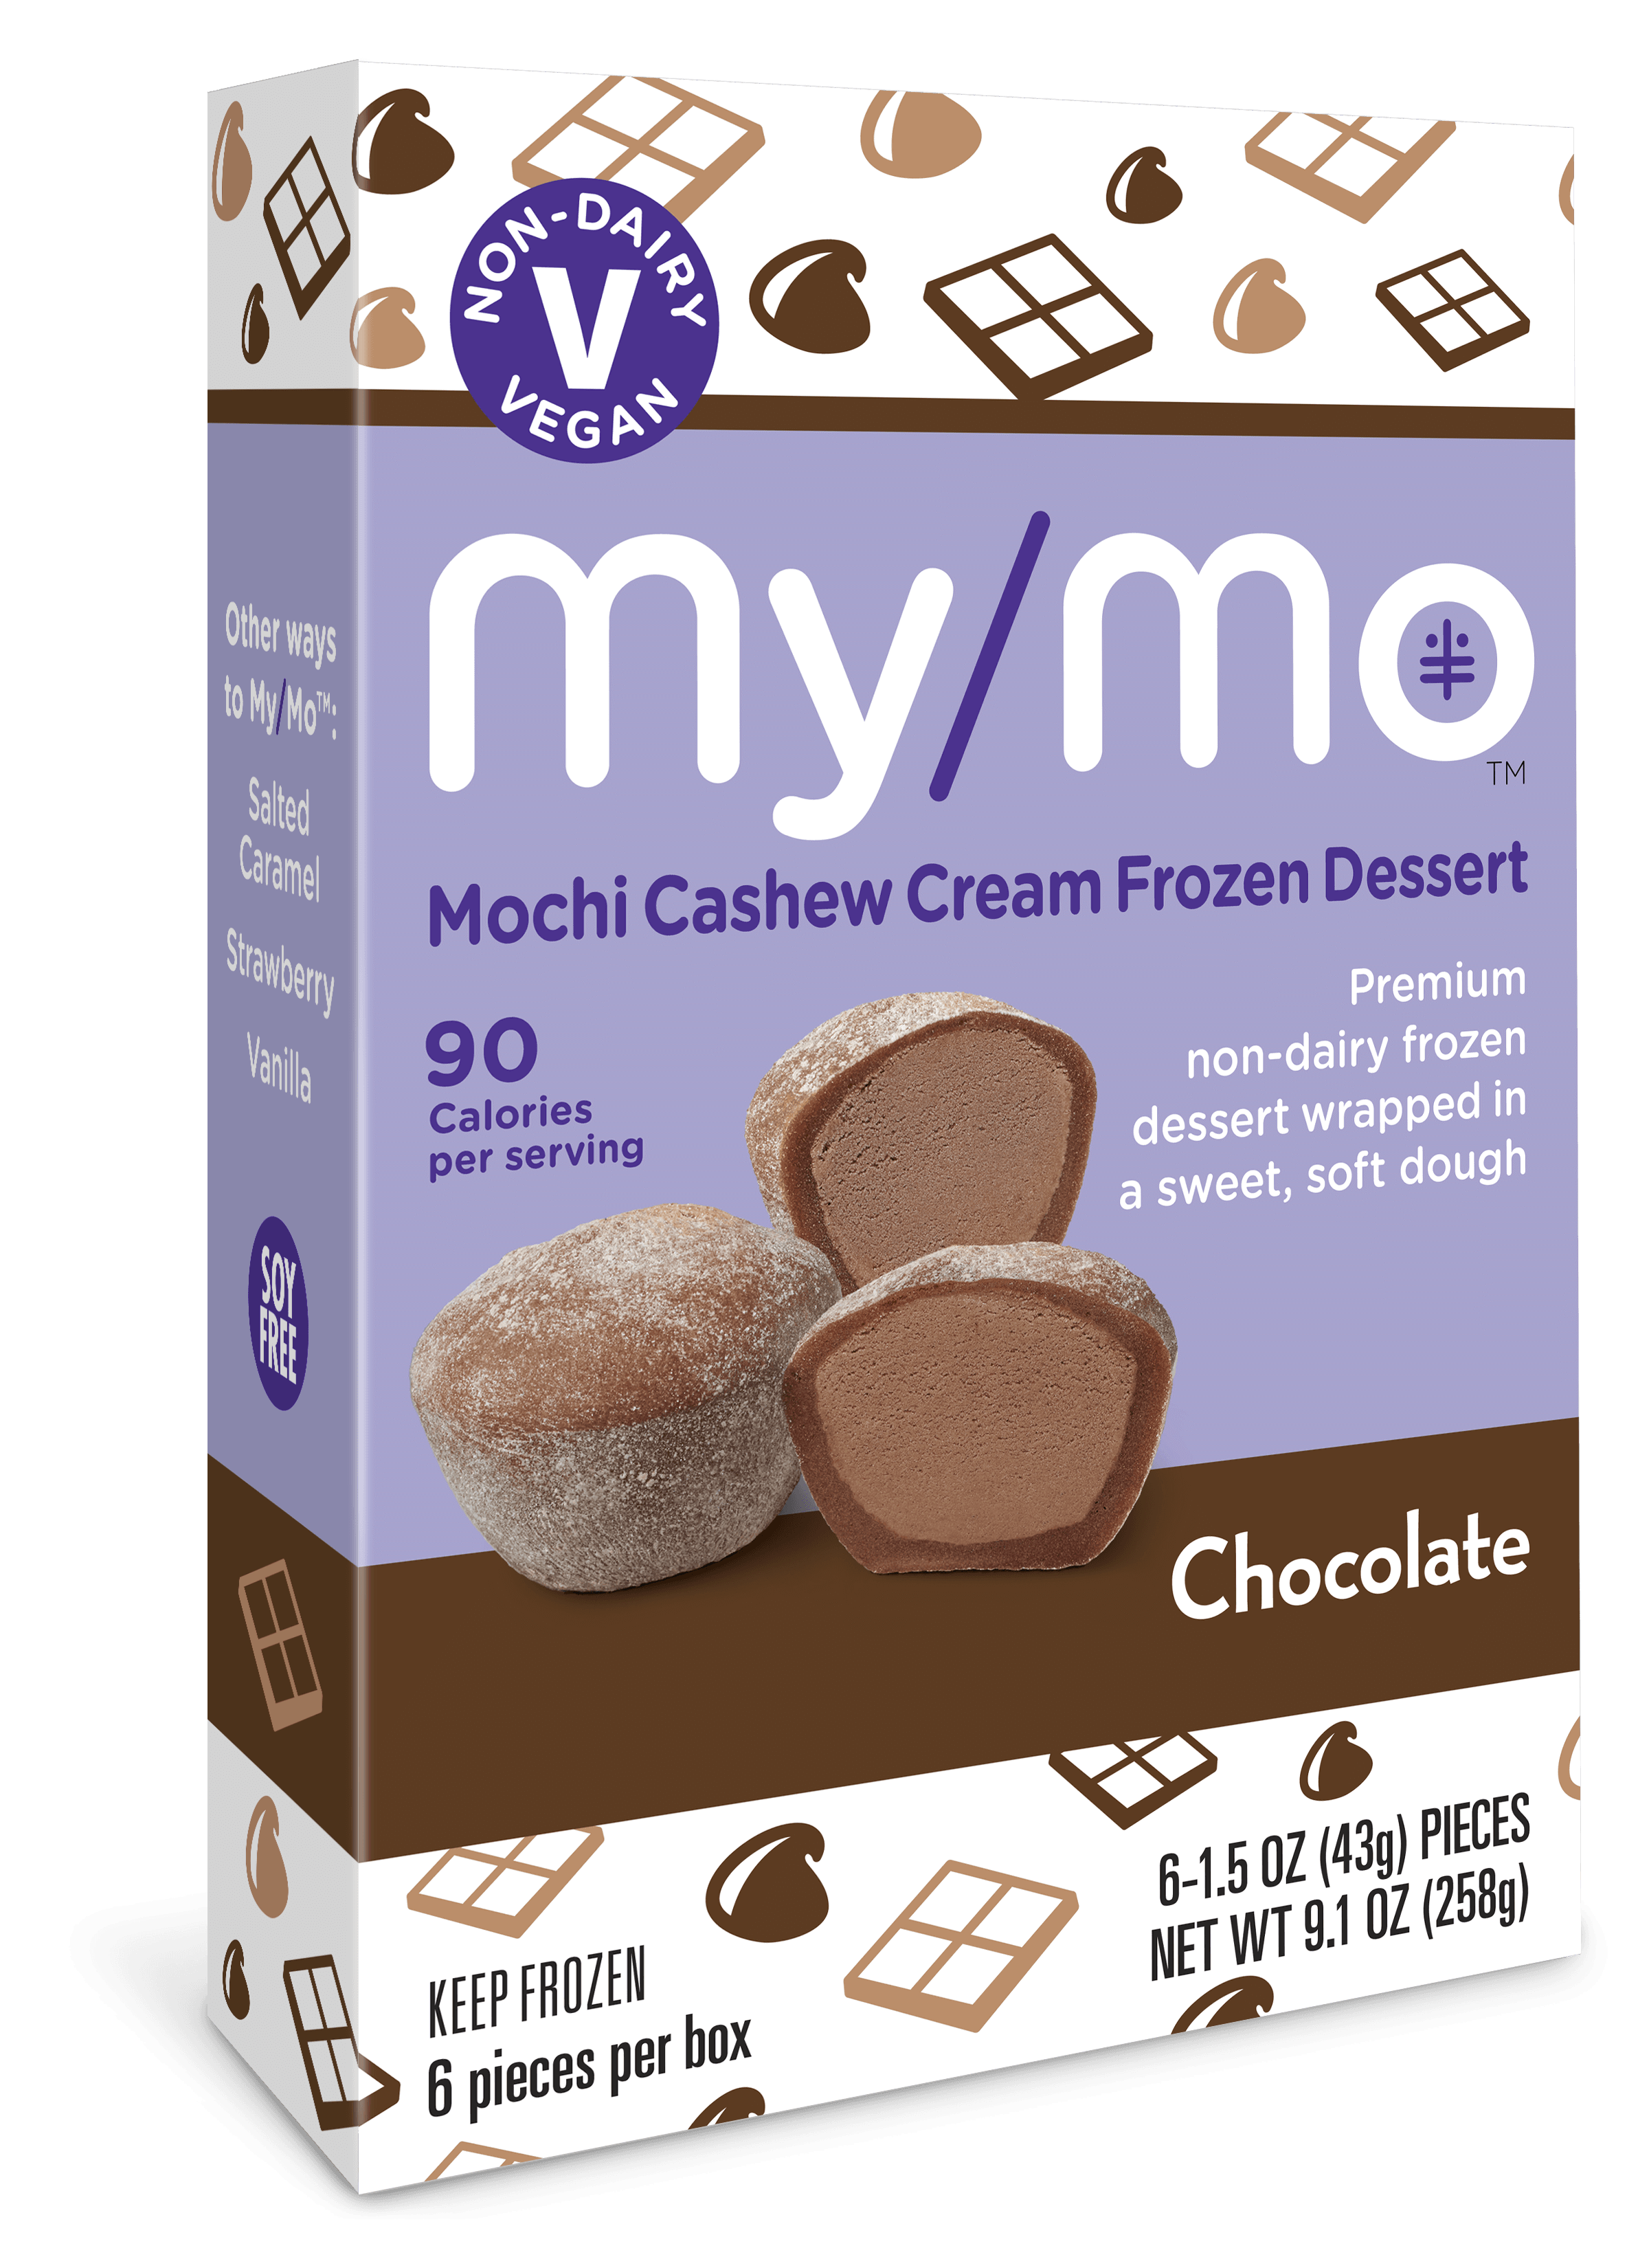 Cup clipart smooth thing. Salted caramel mochi cashew